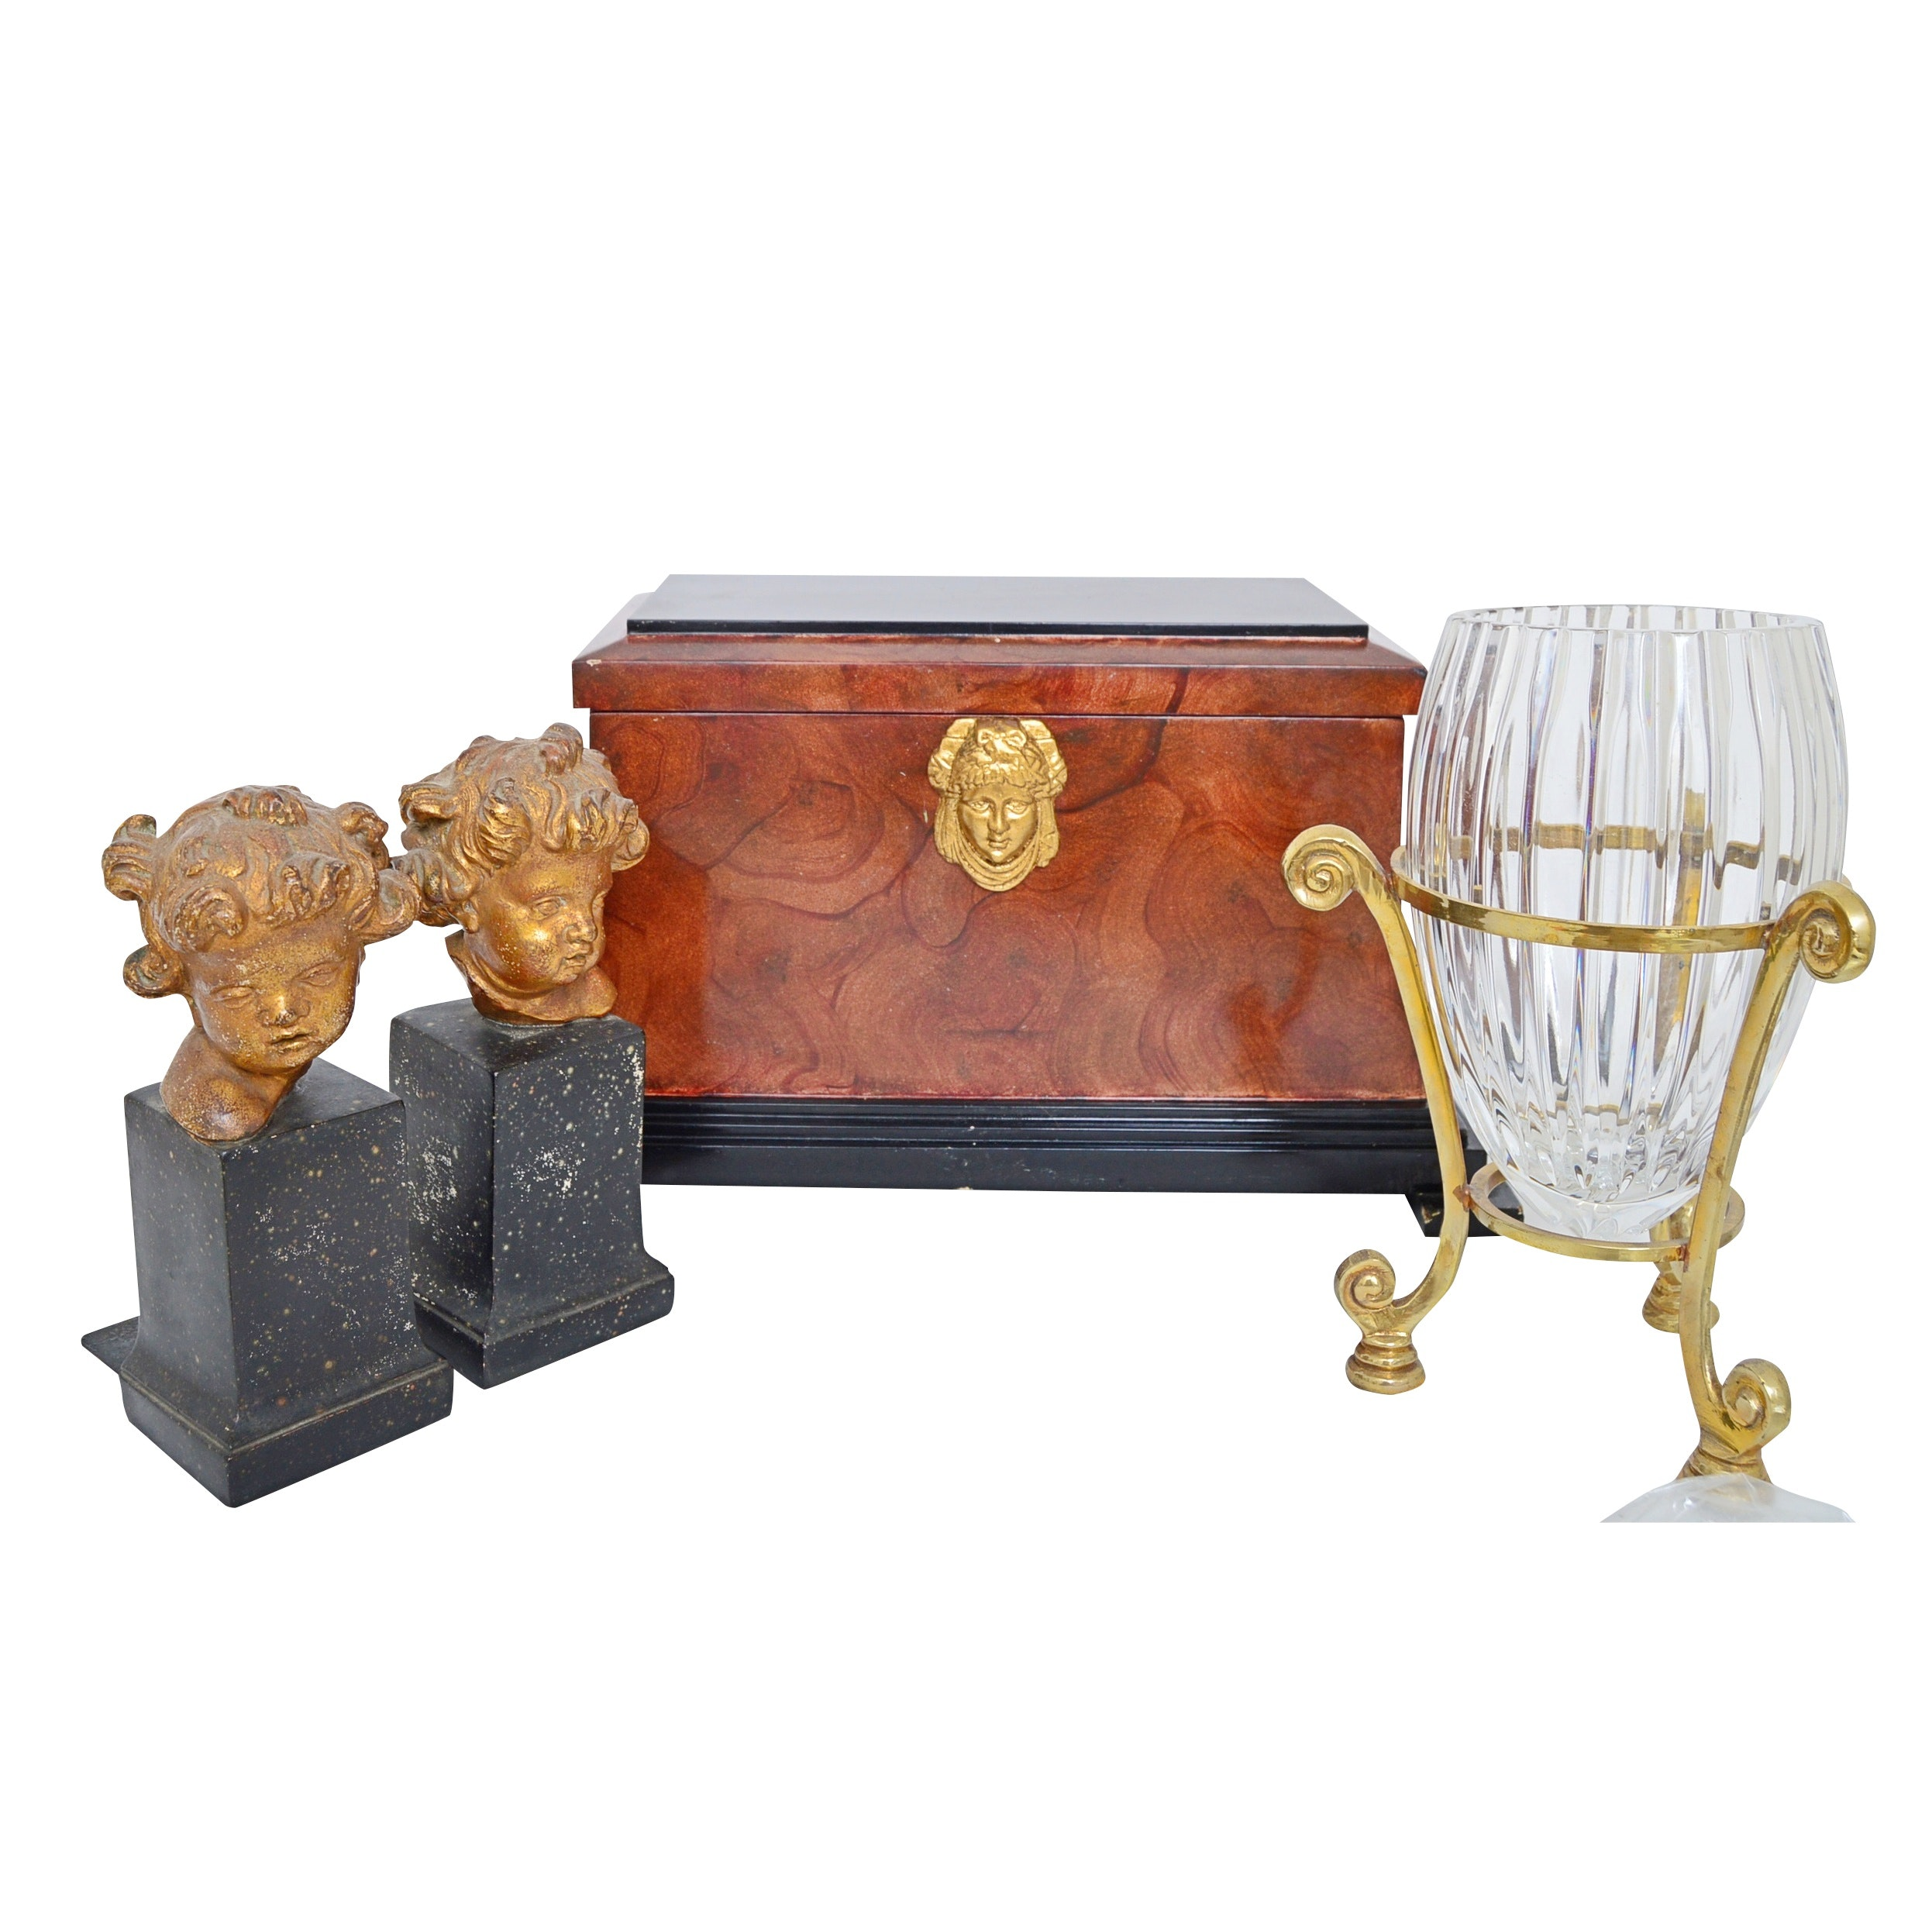 Neoclassic Style Wood Box, Gilded Cupid Bookends and Crystal Vase with Stand